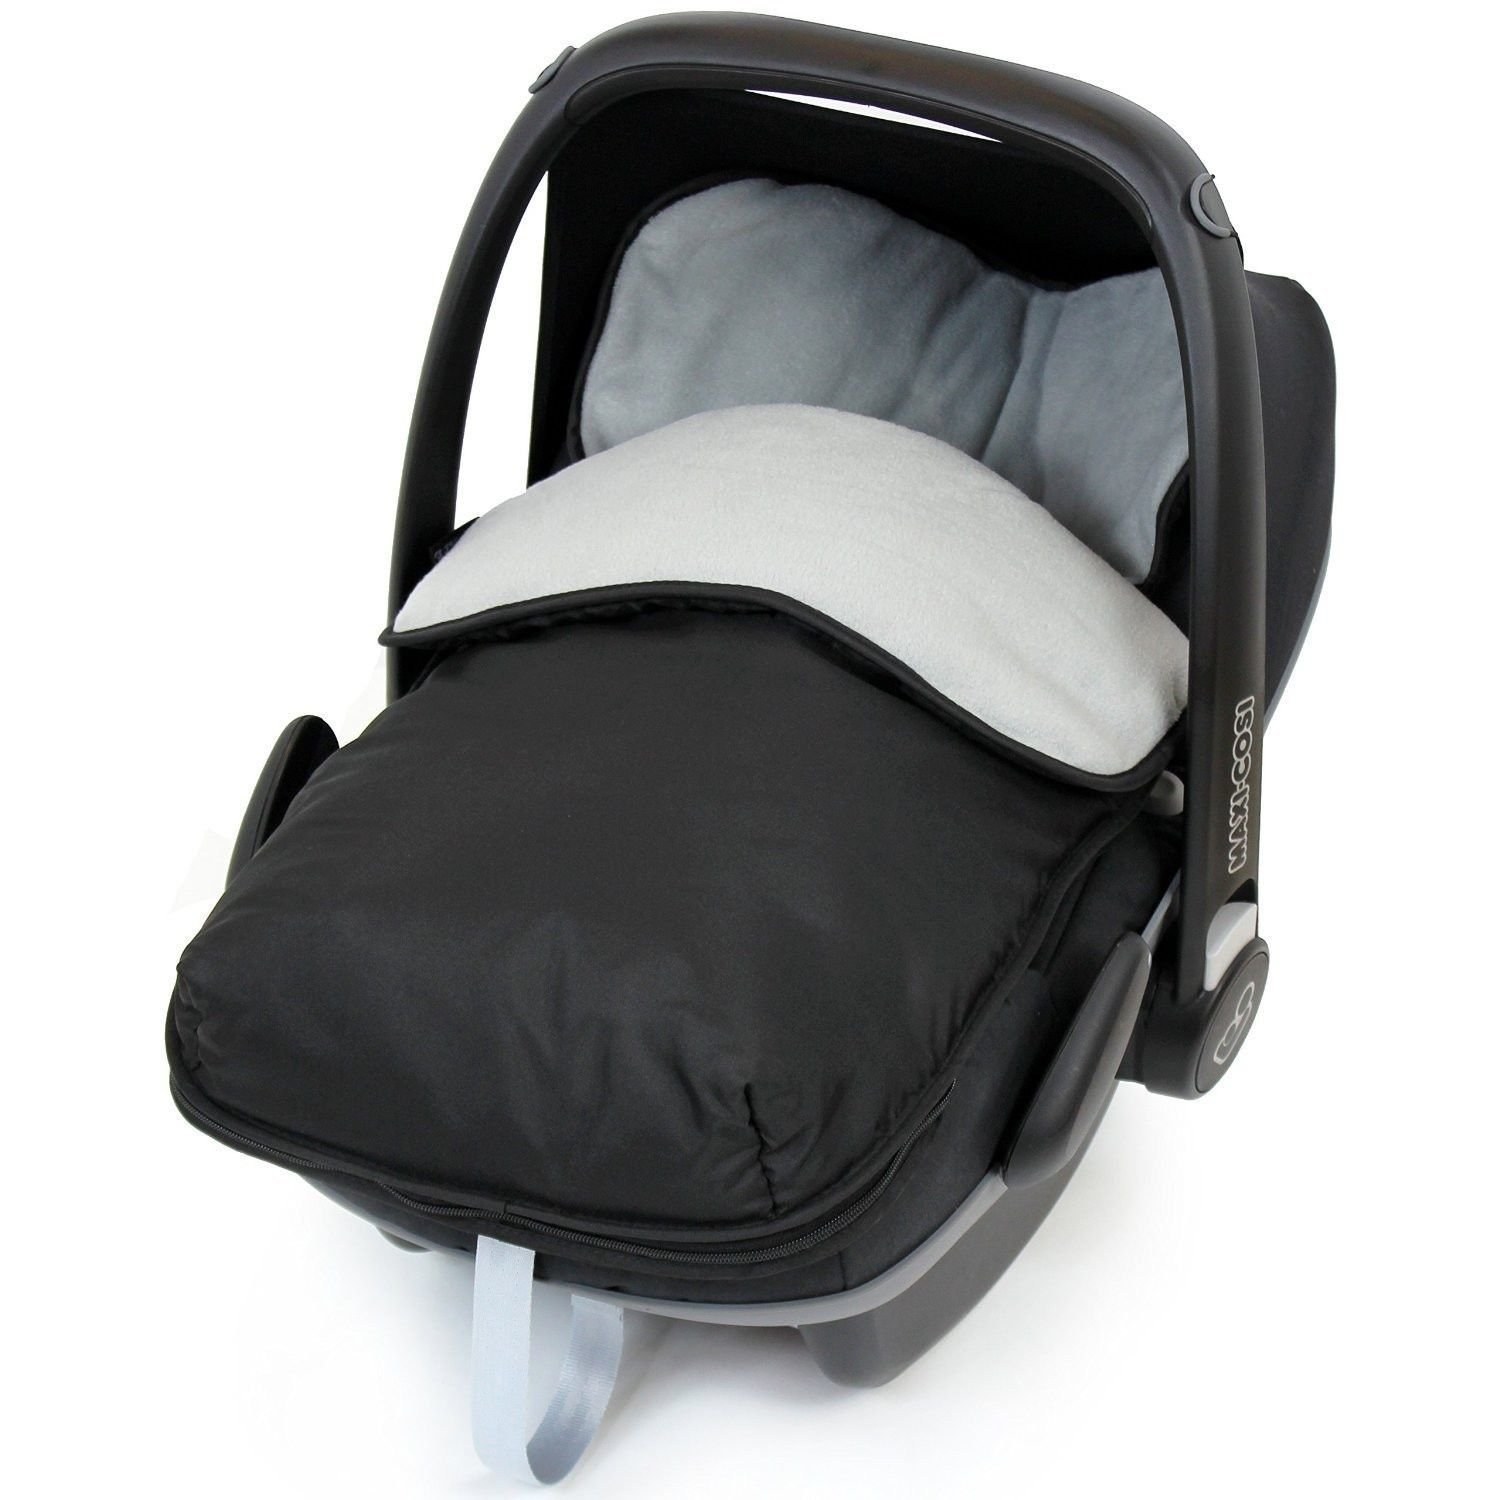 Universal Footmuff for Mamas and Papas Cybex Aton Newborn Car Seat Cosy Toes Liner iSafe iSBgtCrsFmGrey